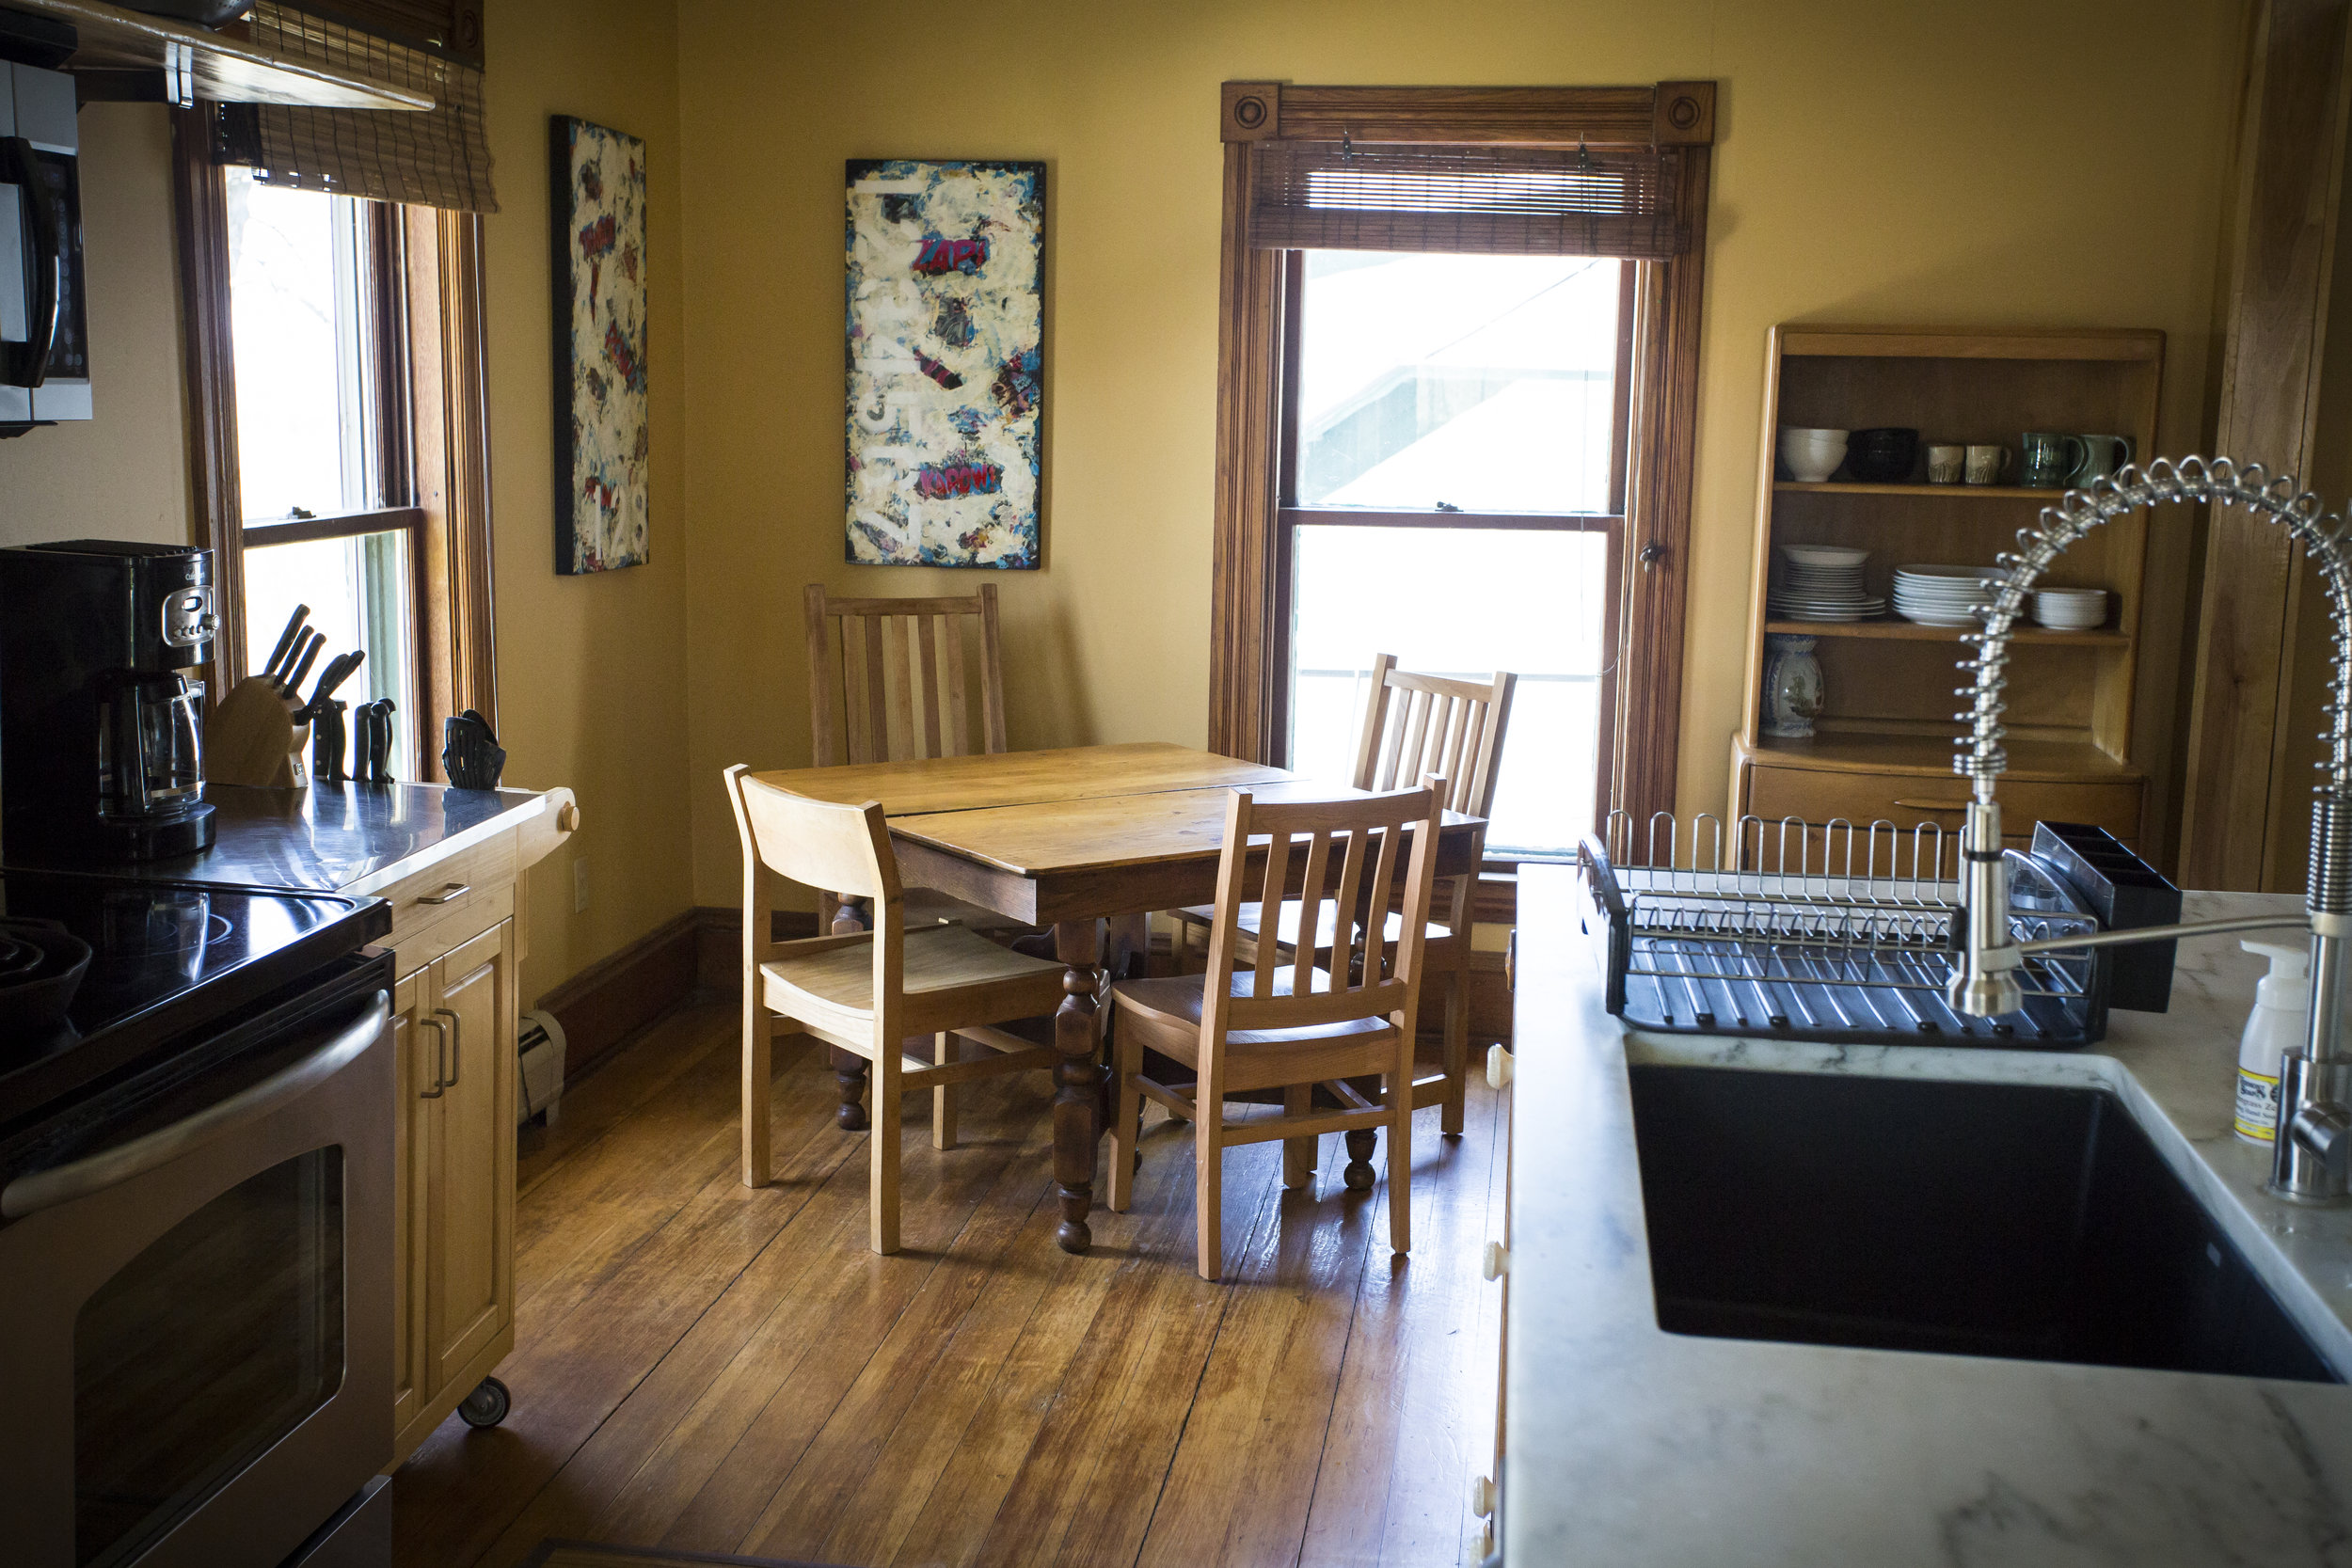 Left Wing kitchen - Spacious and bright dining area, with locally sourced art, solid furniture